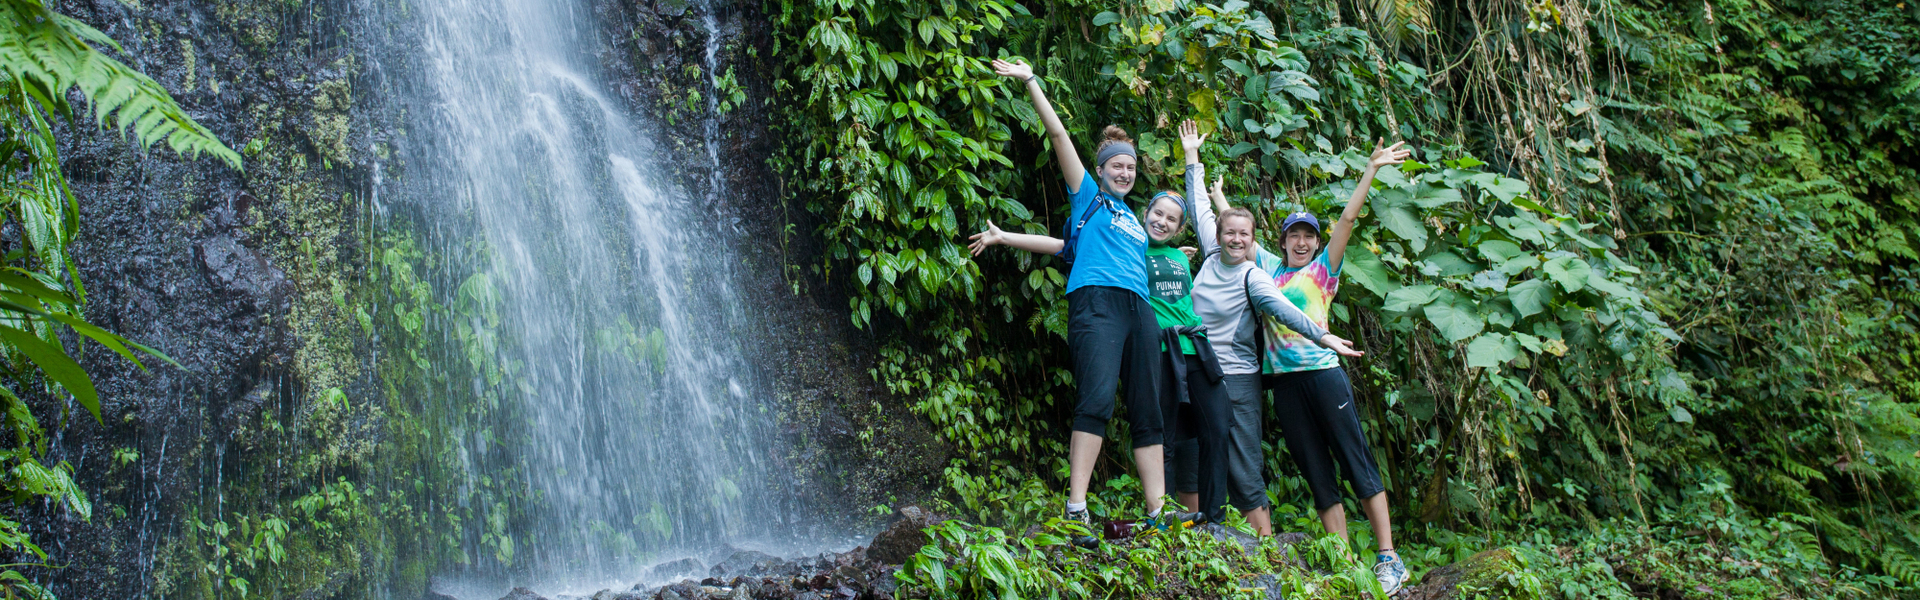 Students in jungle by a waterfall on immersion trip to Guatemala.